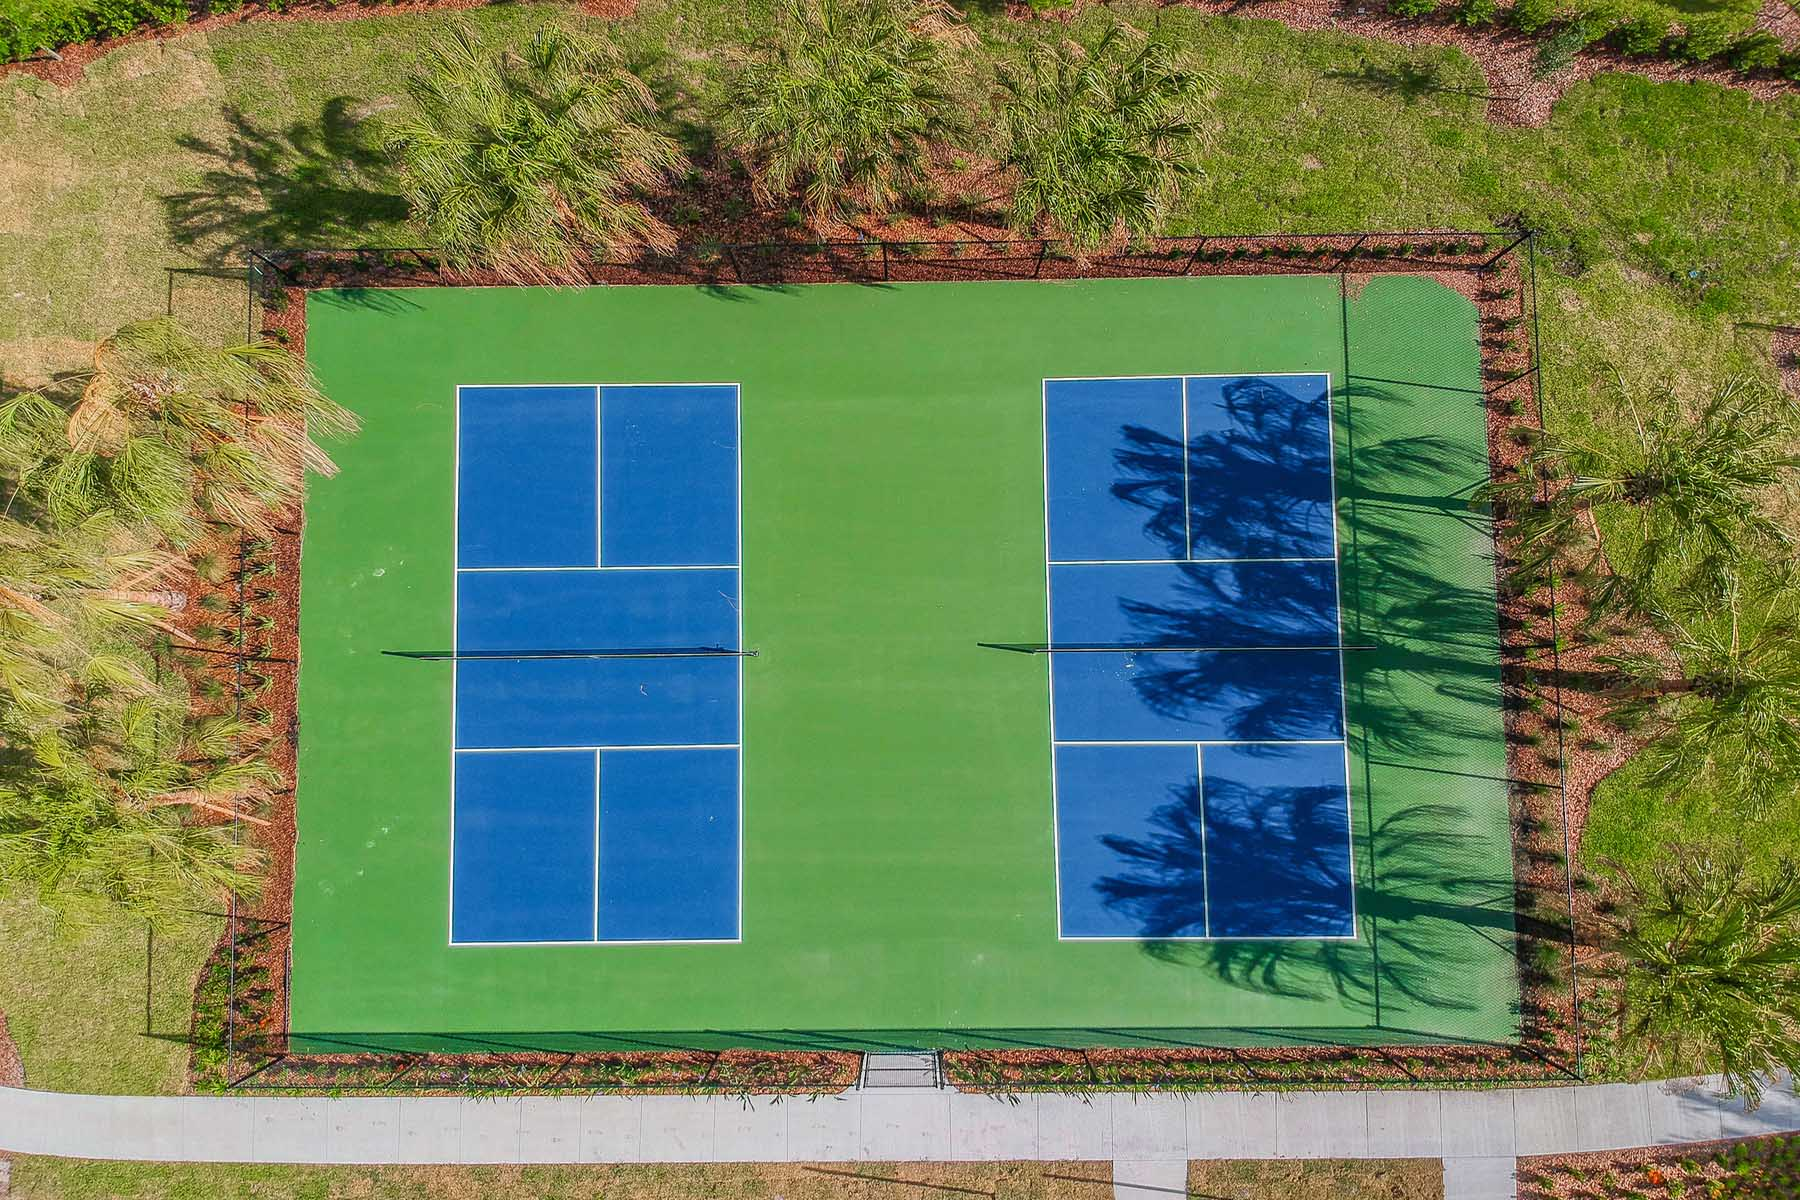 Woodleaf Tennis Courts